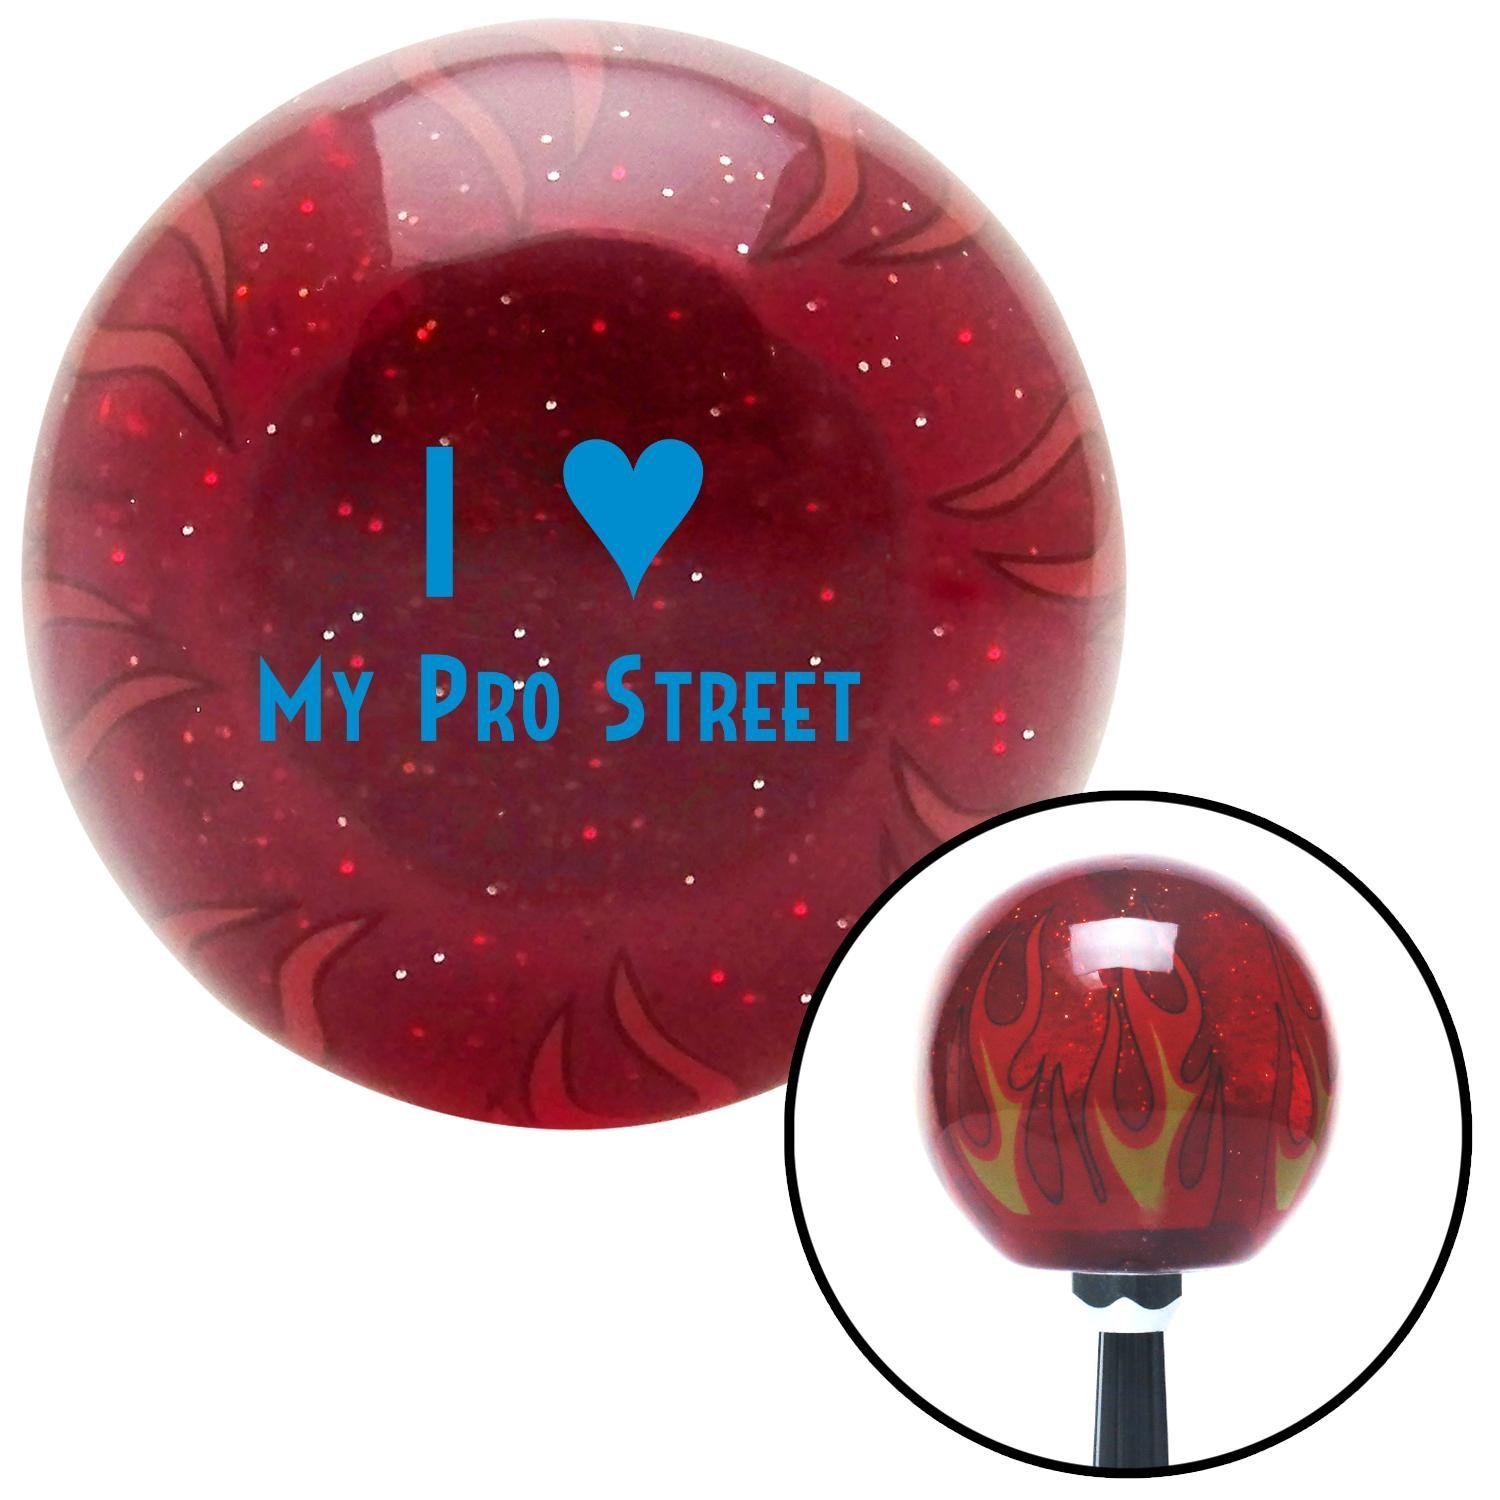 Blue I 3 My PRO Street American Shifter 237417 Red Flame Metal Flake Shift Knob with M16 x 1.5 Insert